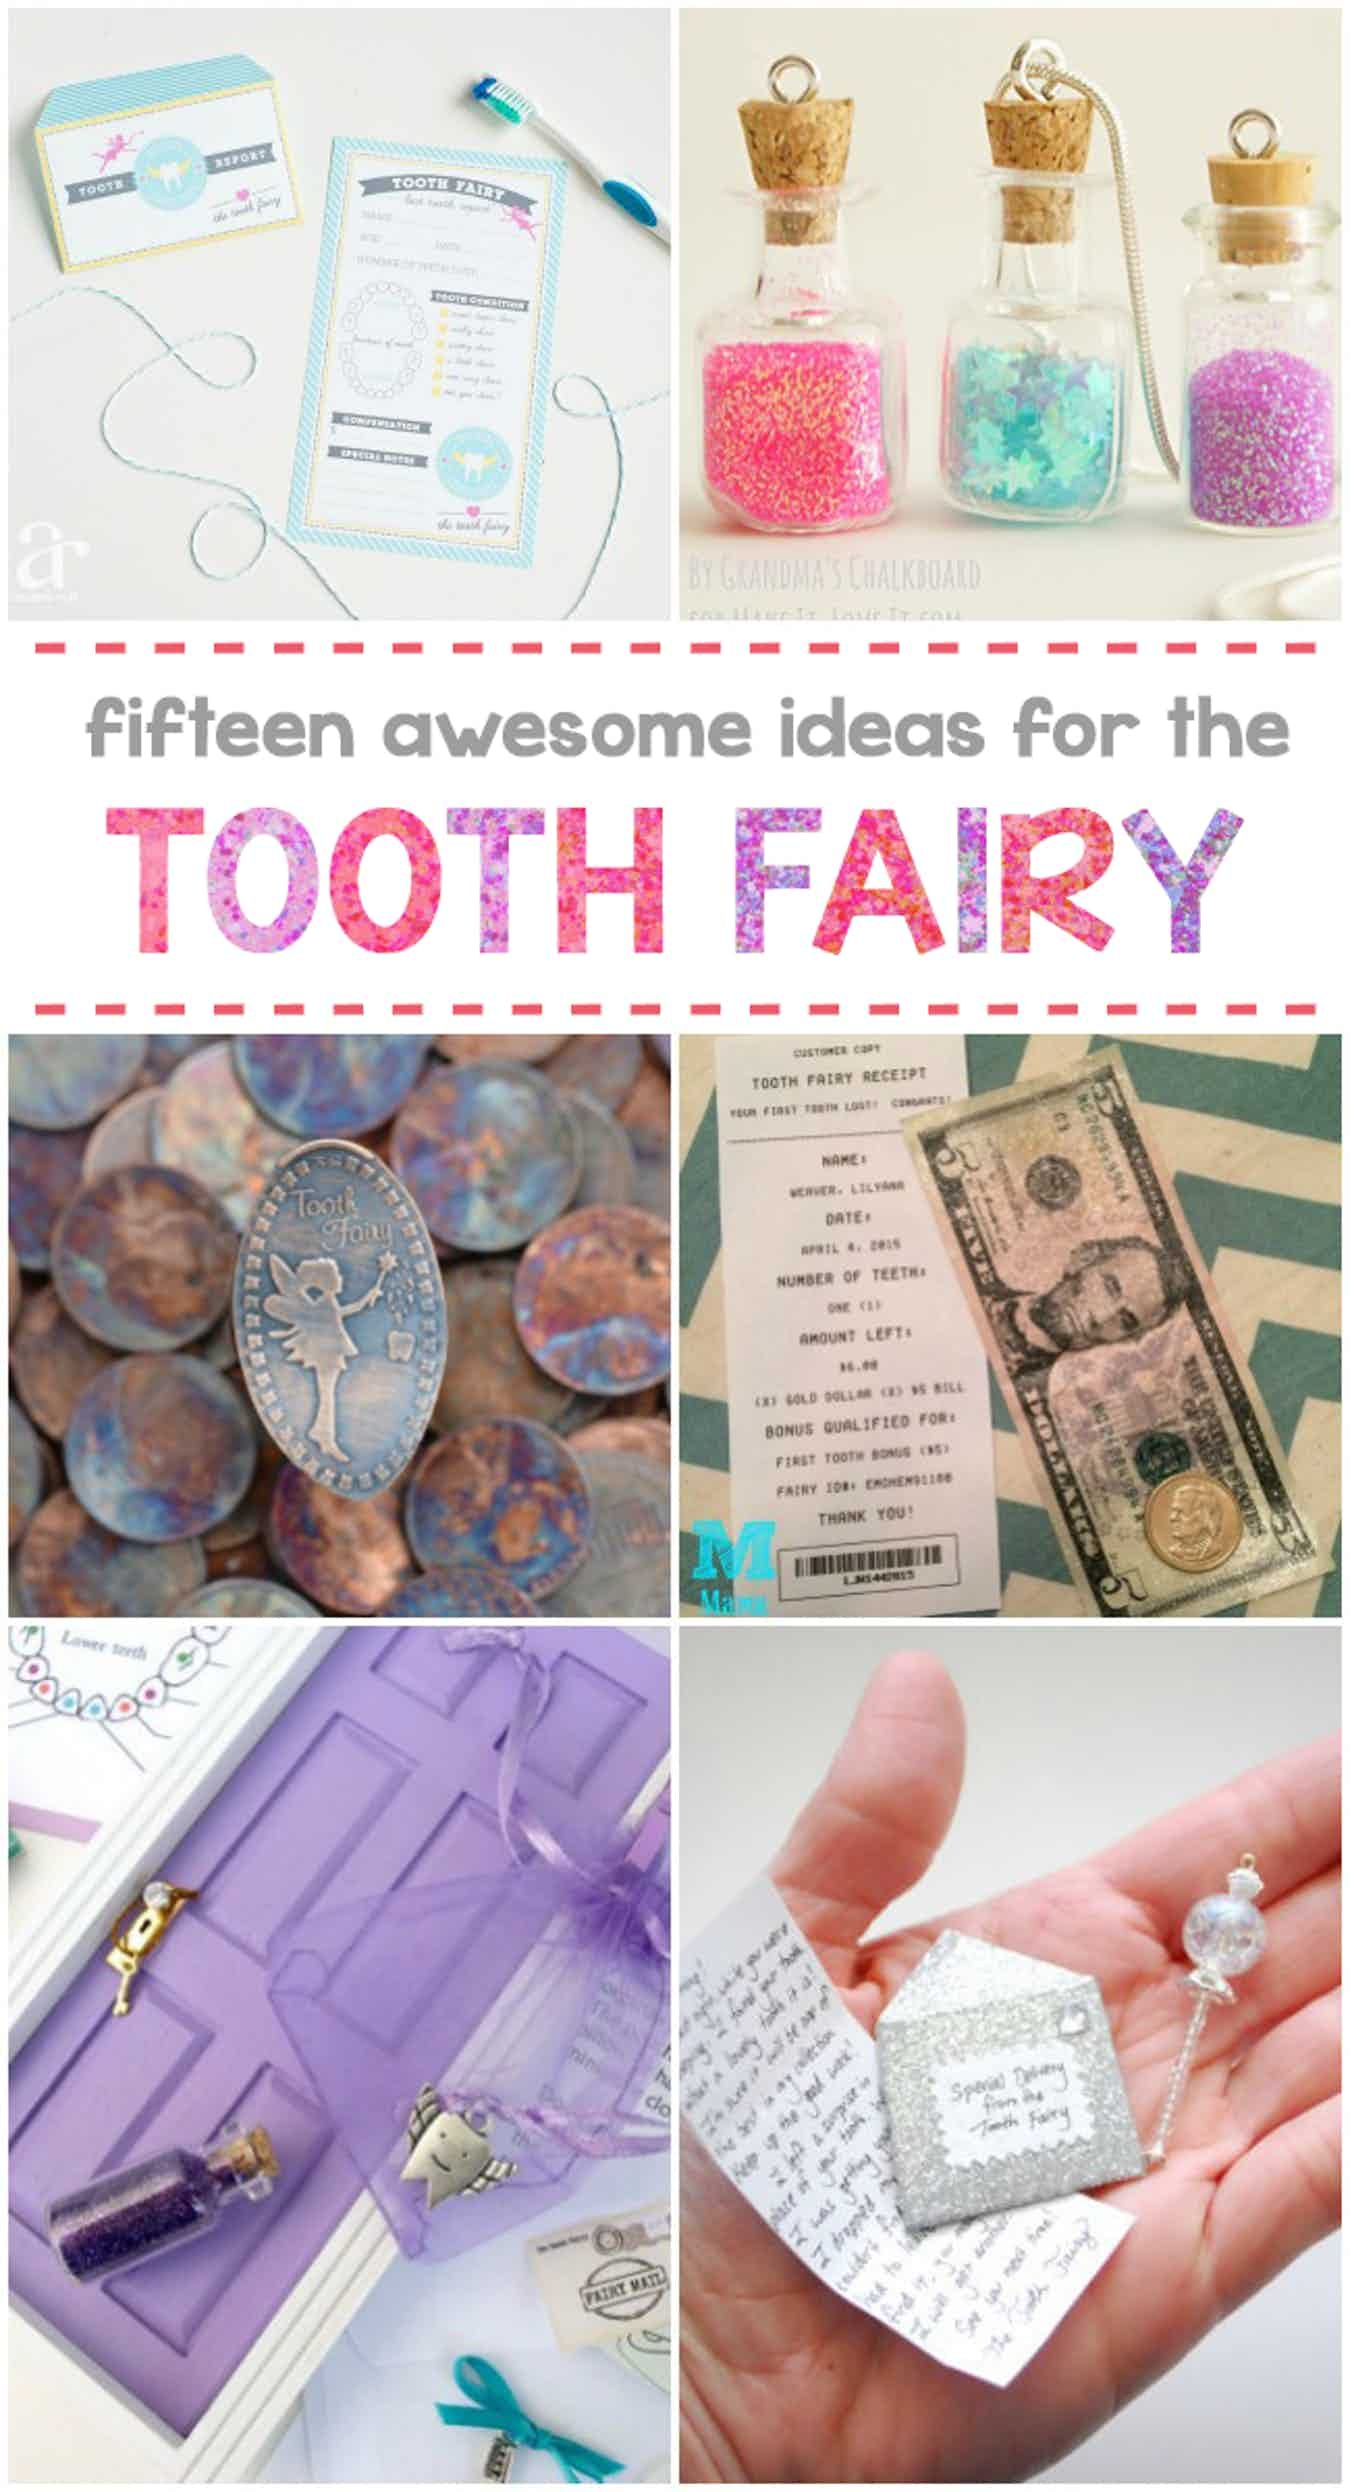 15 awesome tooth fairy ideas - kids activities | tooth fairy